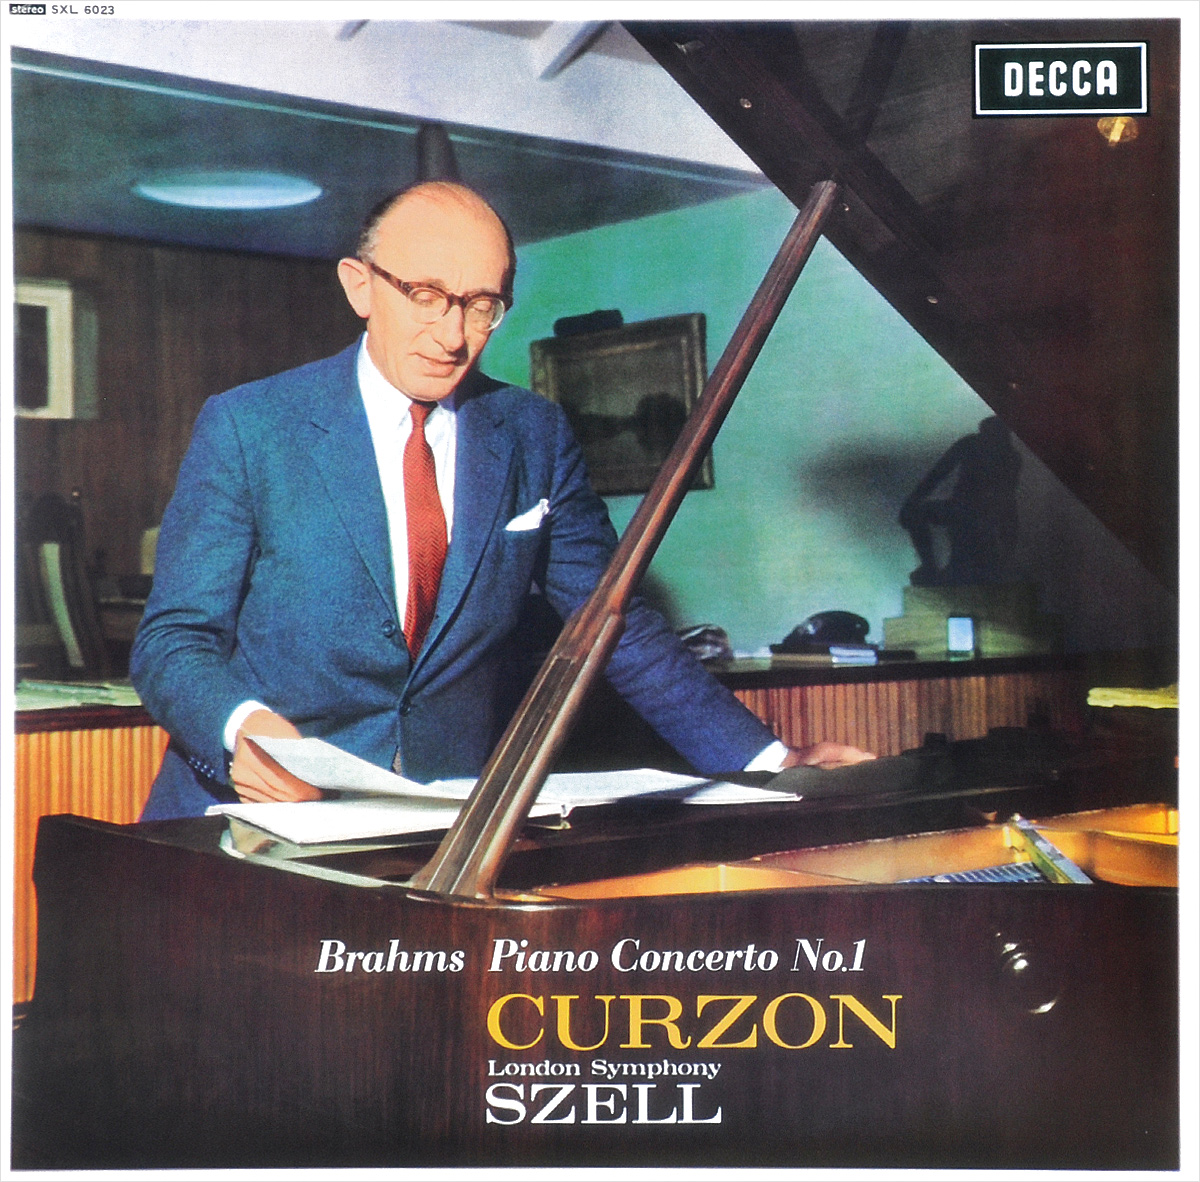 Джордж Селл,Клиффорд Курзон,The London Symphony Orchestra George Szell. Brahms. Piano Concerto No. 1 (LP)